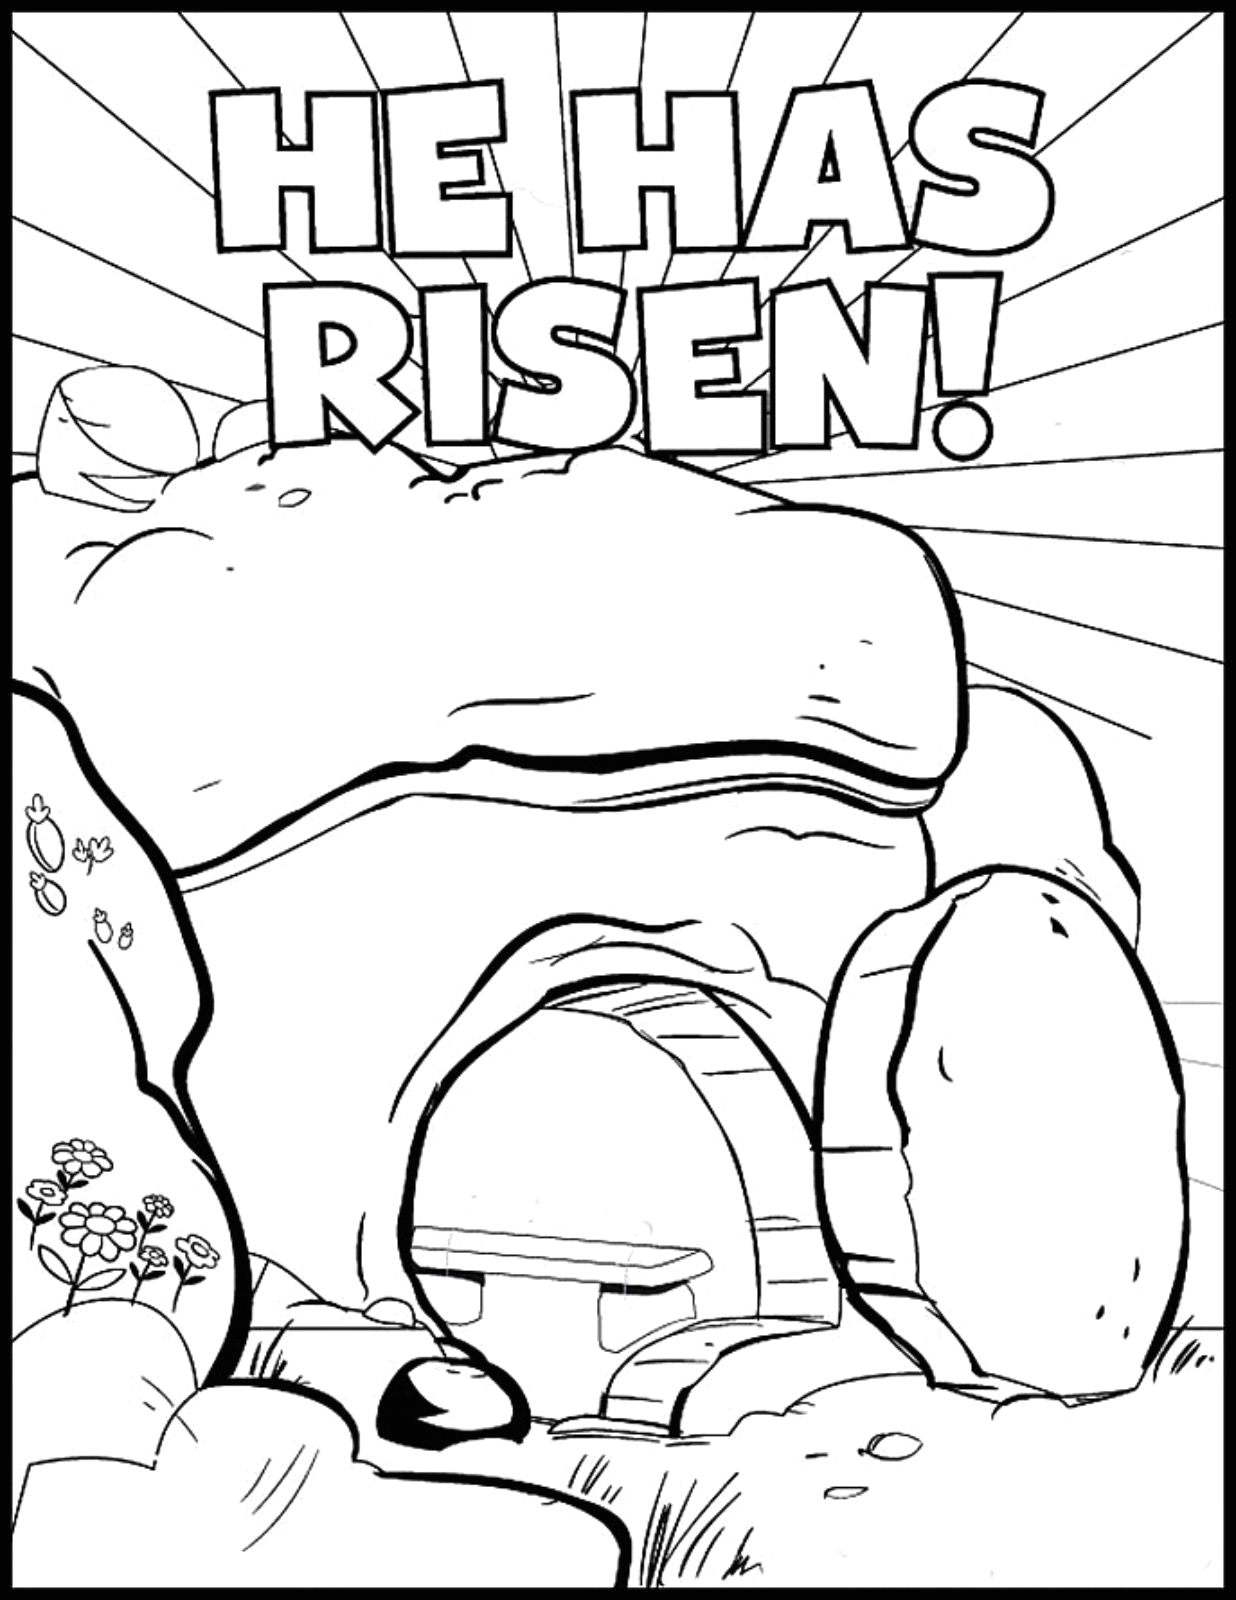 Free Coloring Pages for Easter Sunday School He Has Risen Coloring Page